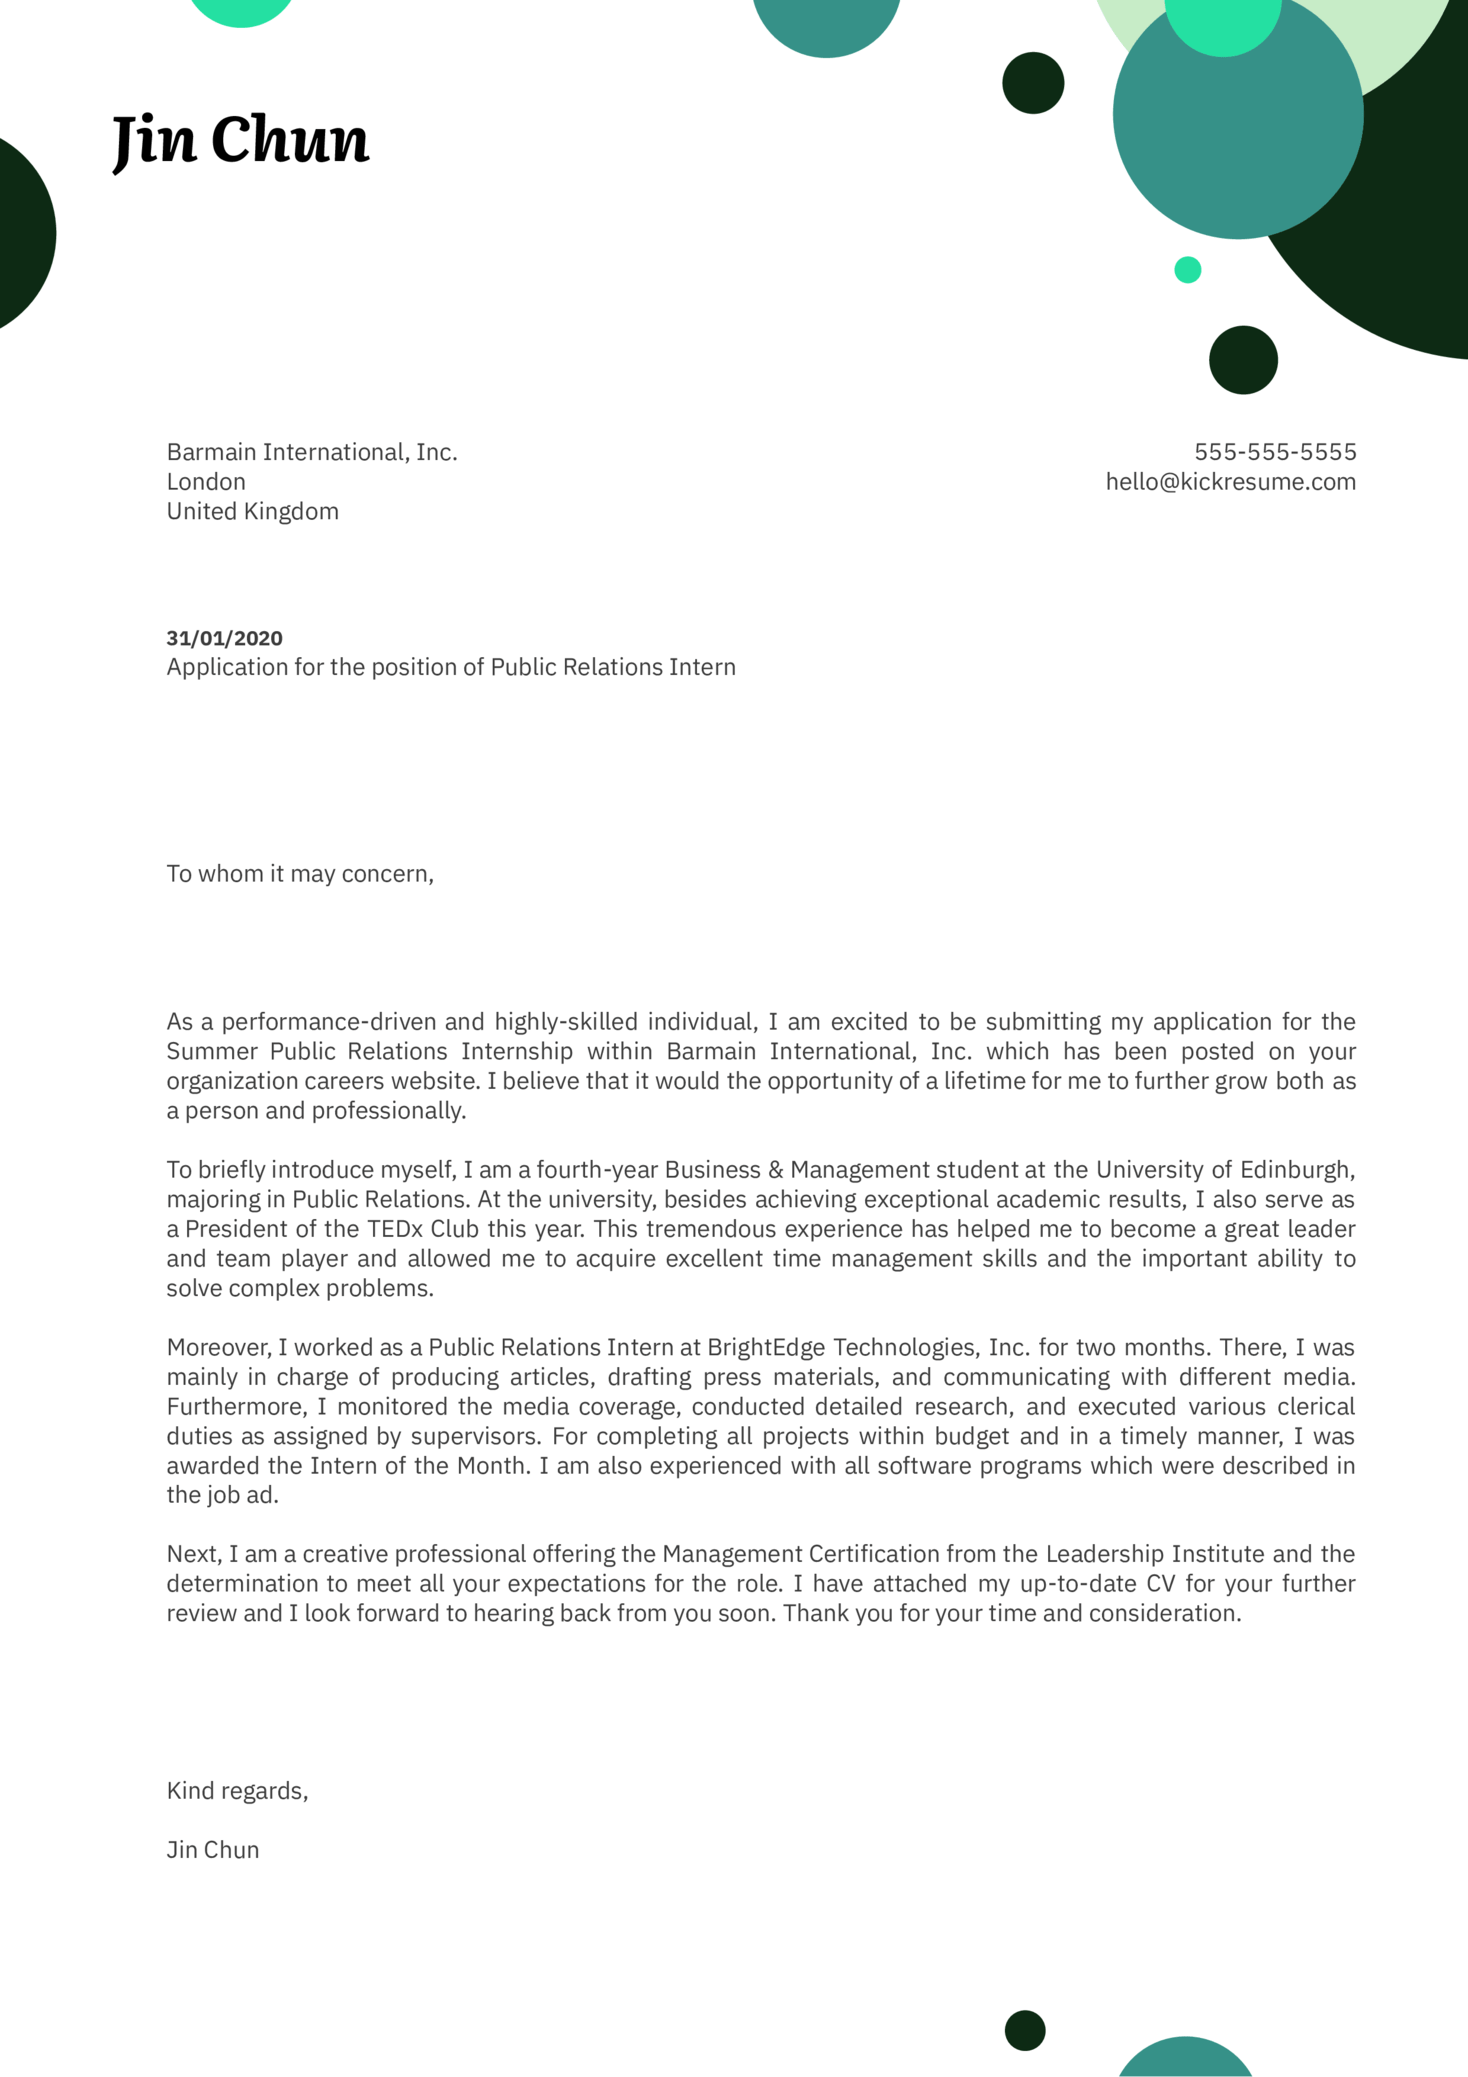 Sample Cover Letter For Students Applying For An Internship from s3-eu-west-1.amazonaws.com